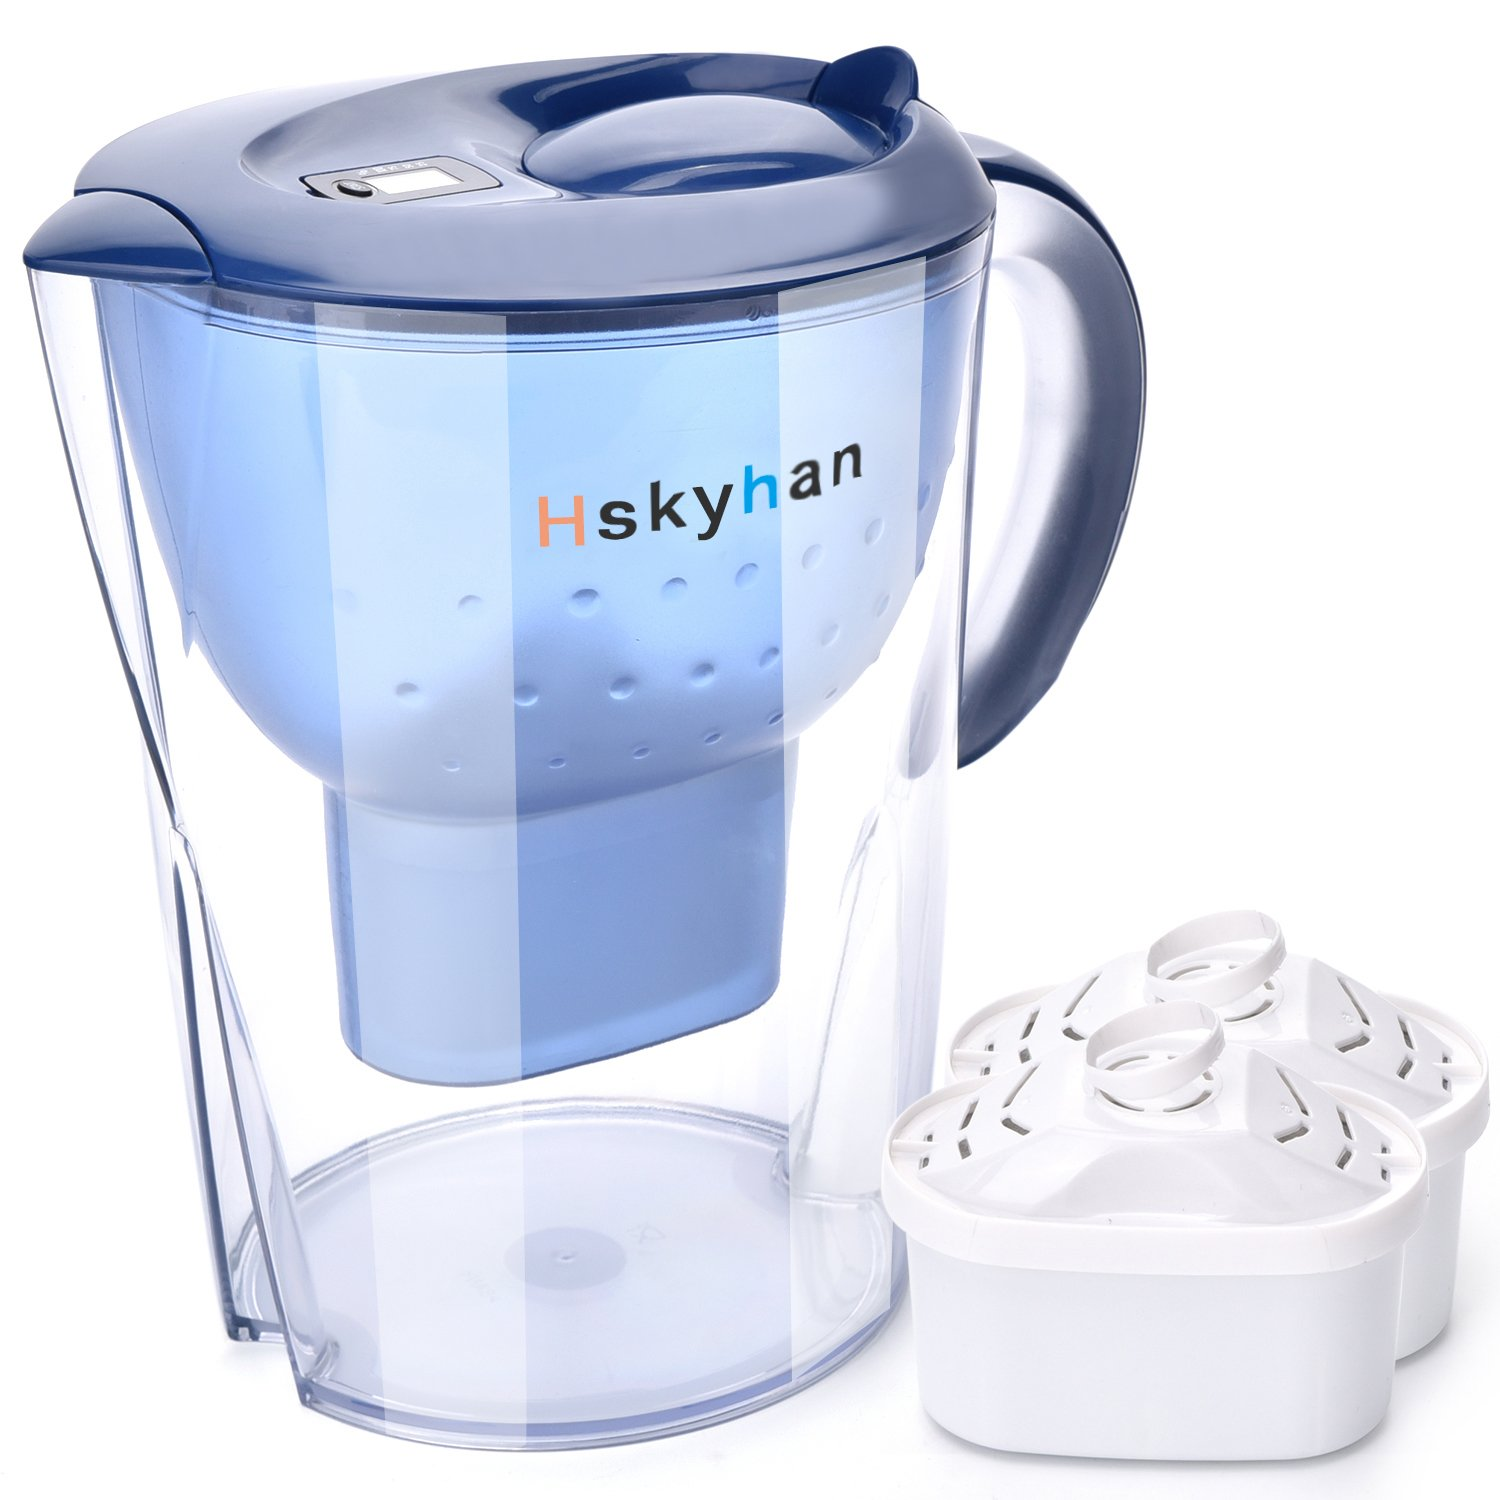 Hskyhan Alkaline Water Pitcher - 3.5 Liters Improve PH, 2 Filters Included, 7 Stage Filteration System To Purify, Blue HH003